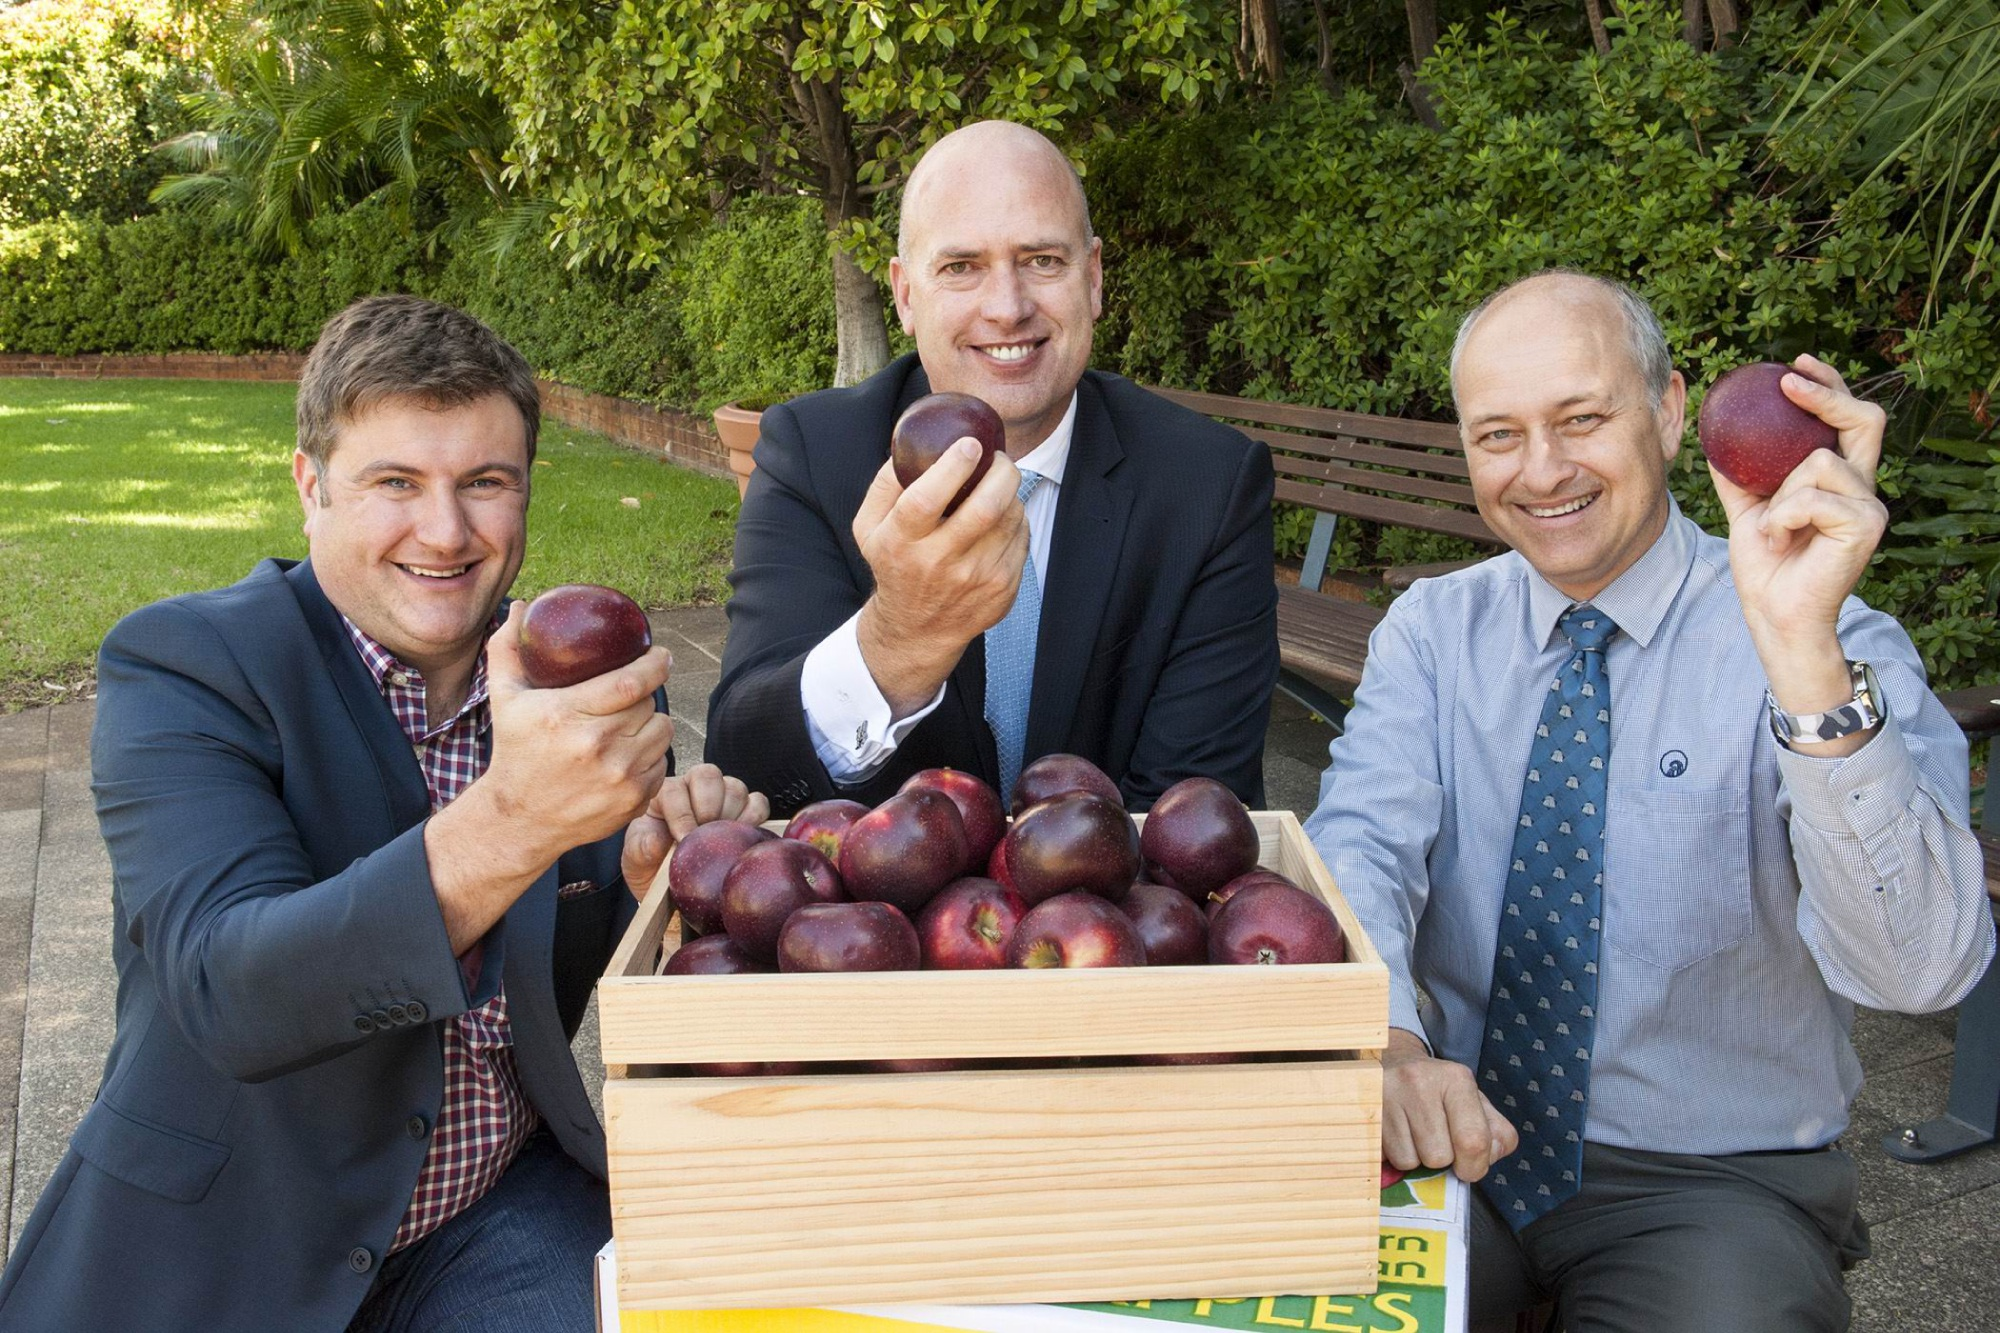 WA grower Mario Casotti, Agriculture and Food Minister Dean Nalder and Department of Agriculture and Food Horticulture Director David Windsor with the new locally bred apple Bravo, distinguished by its rich burgundy colour.